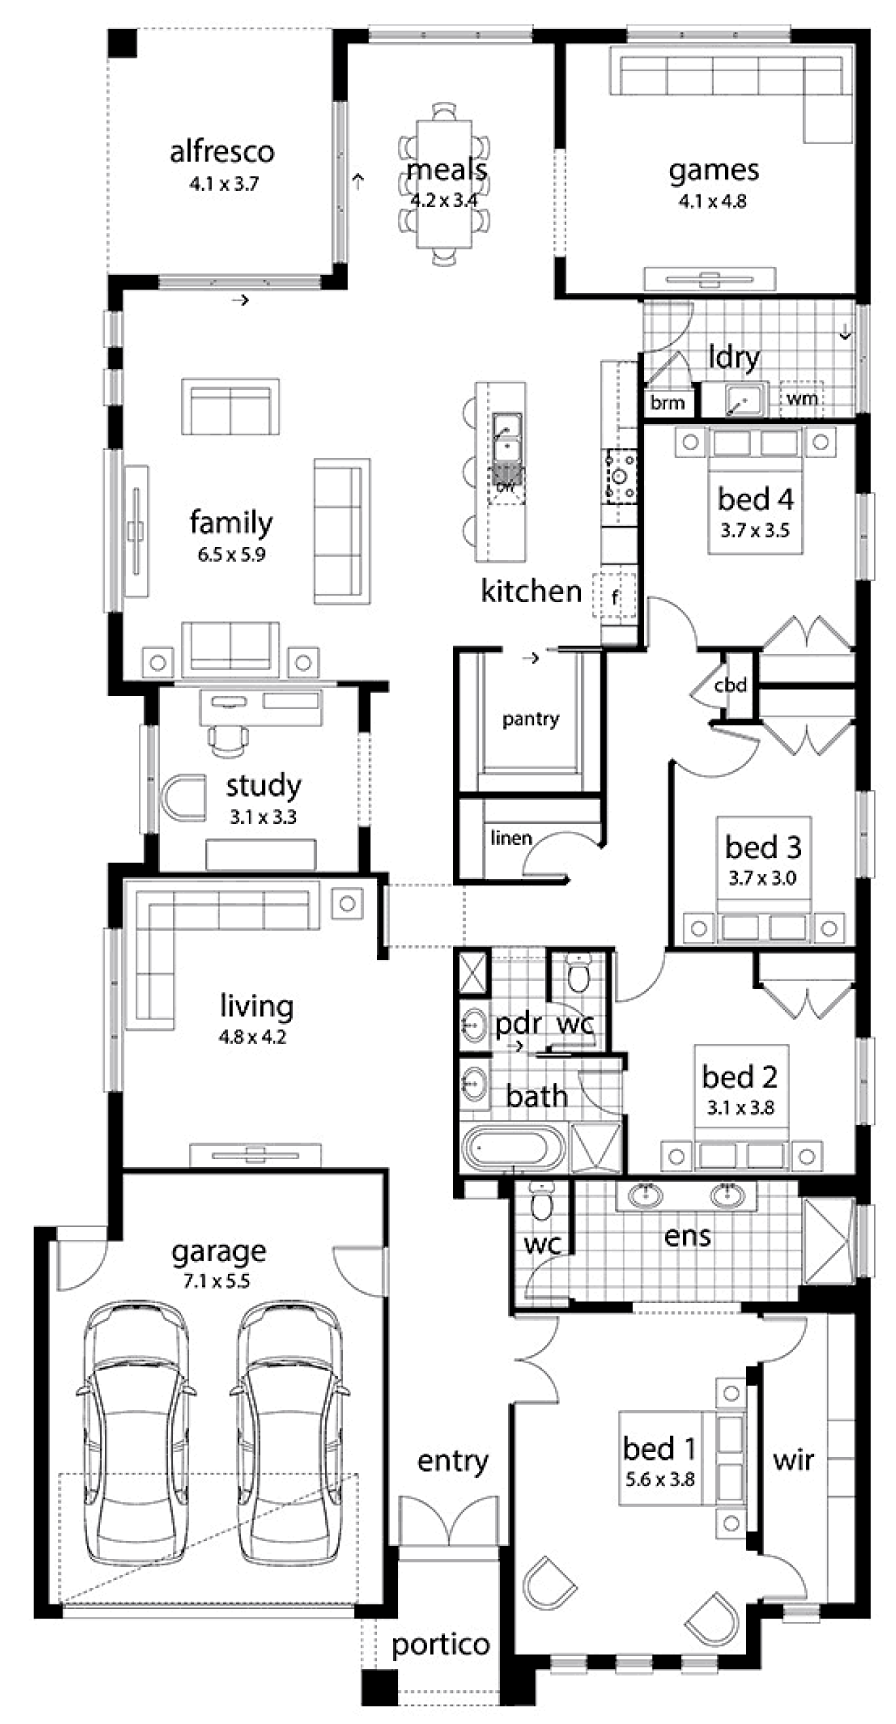 Today I have this large family home that uses the space well. I ...